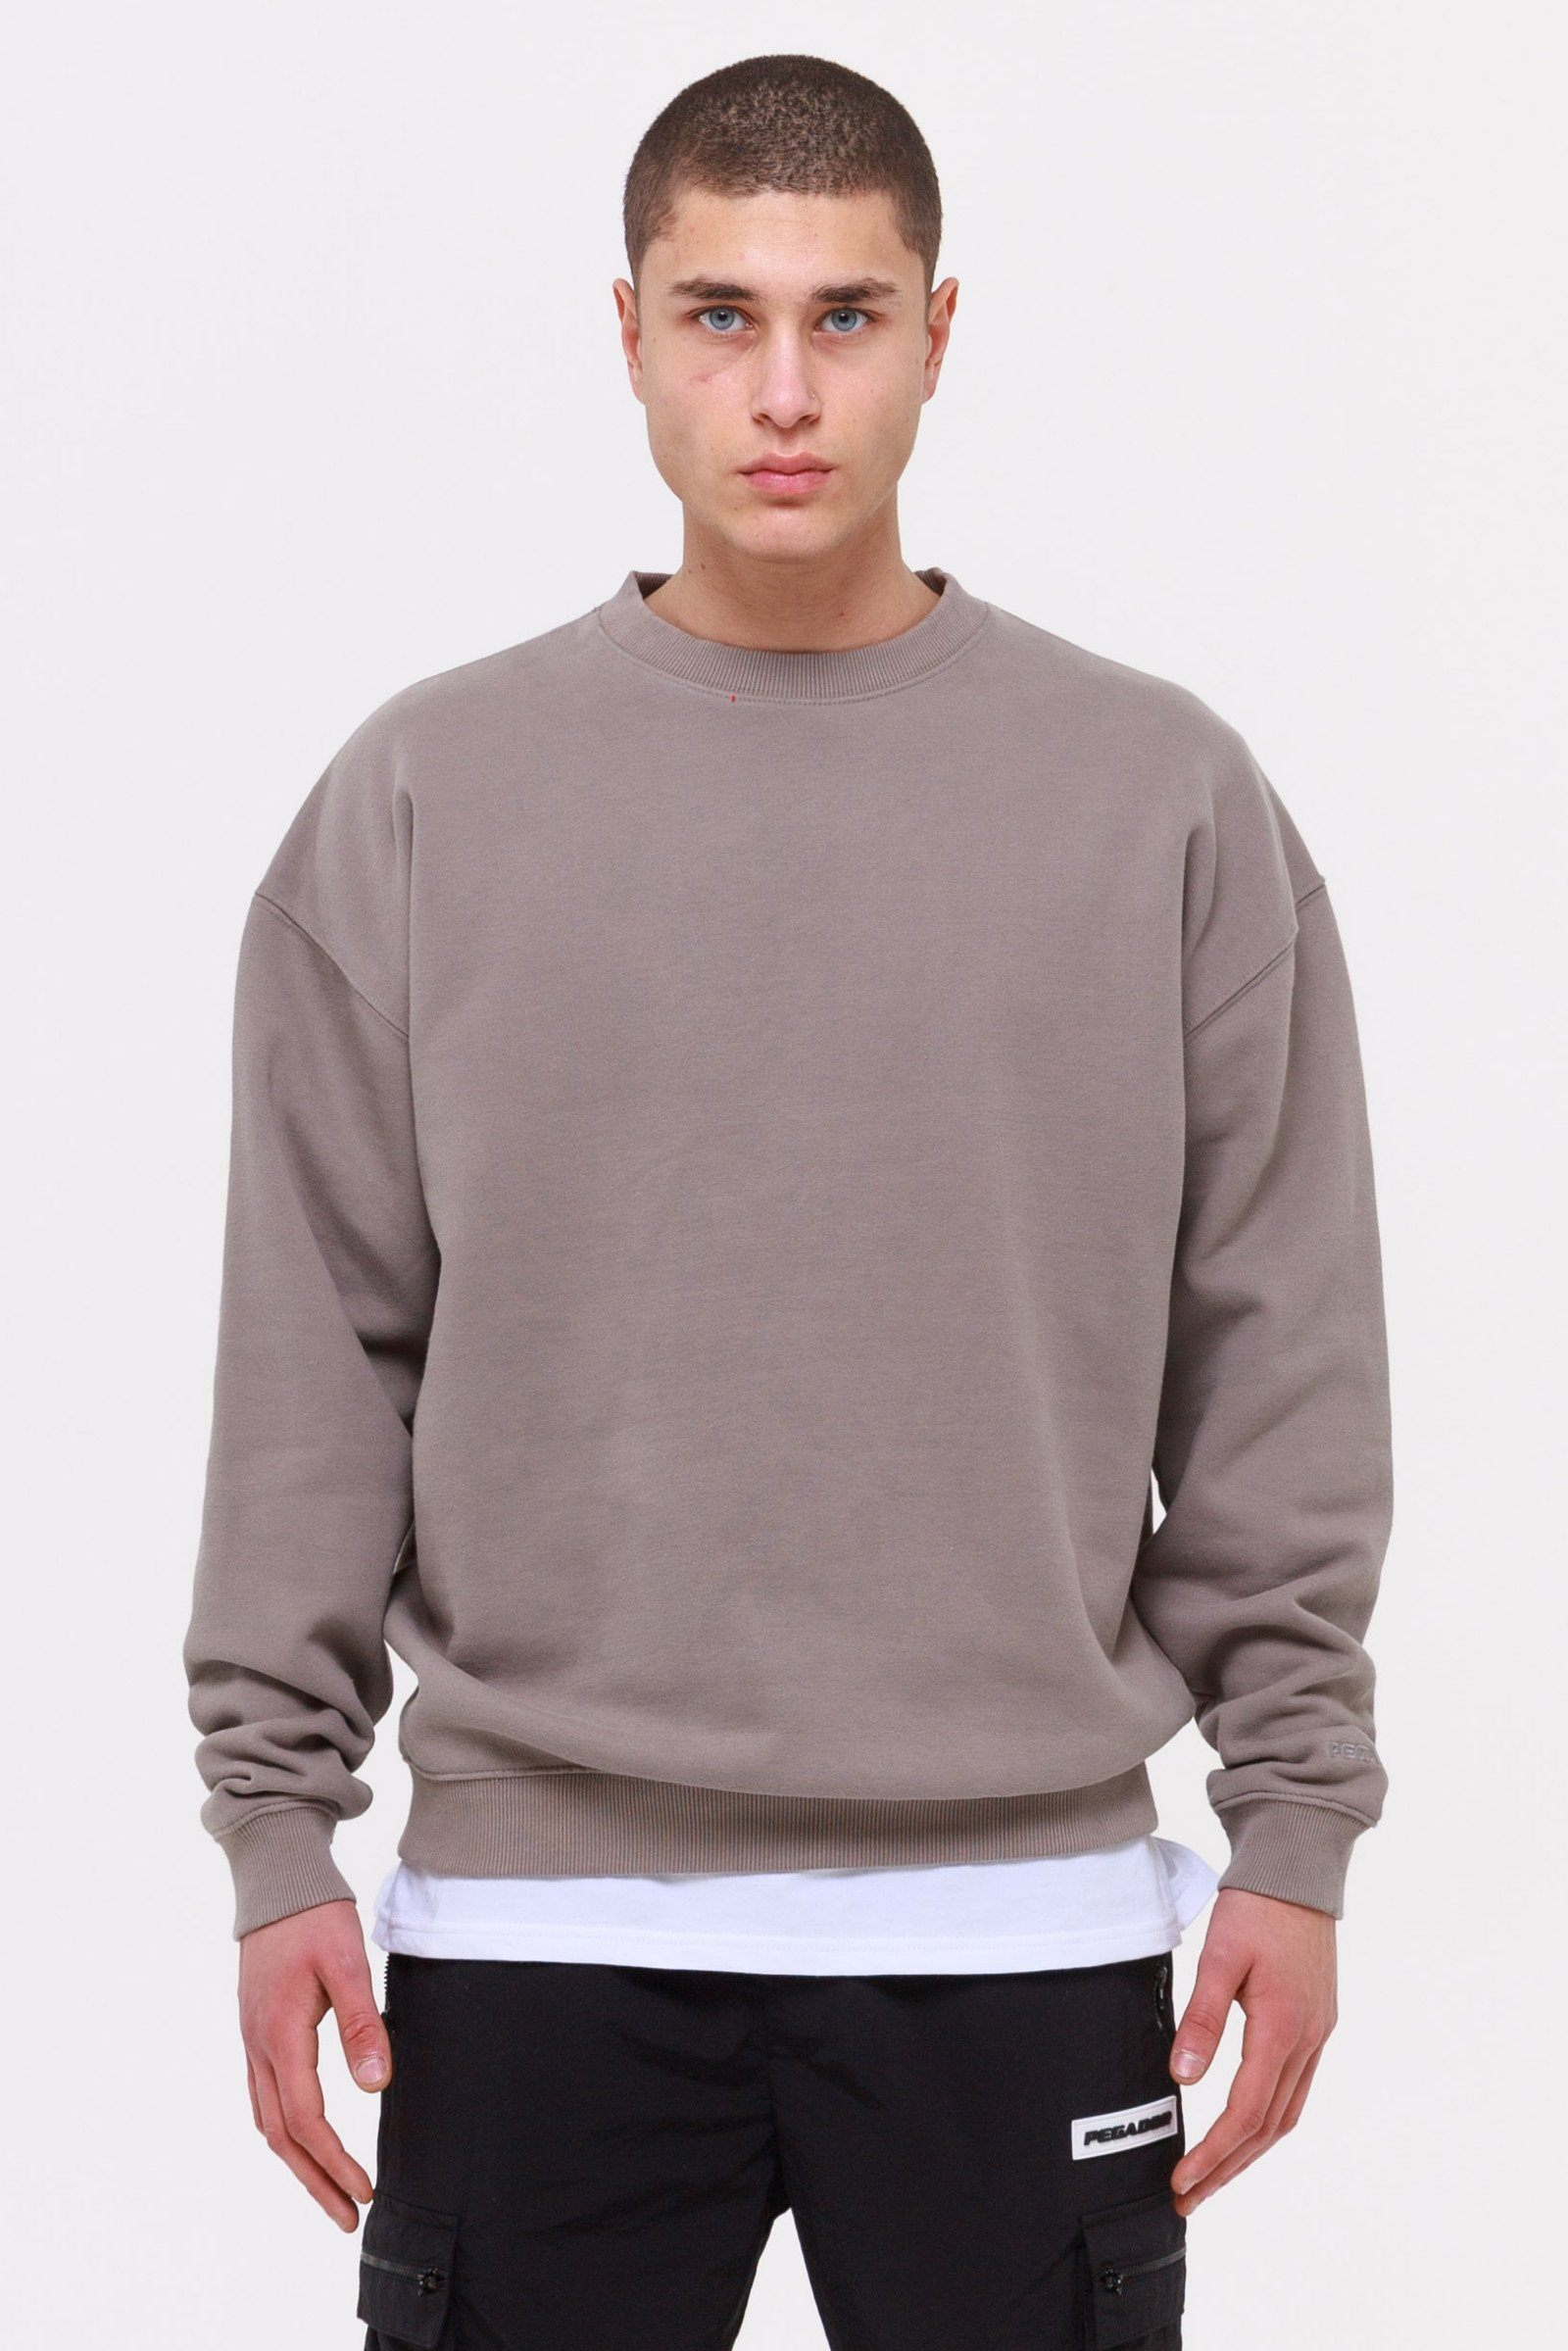 Heavy Oversized Sweater Washed Frost Grey SWEATER Wild Society